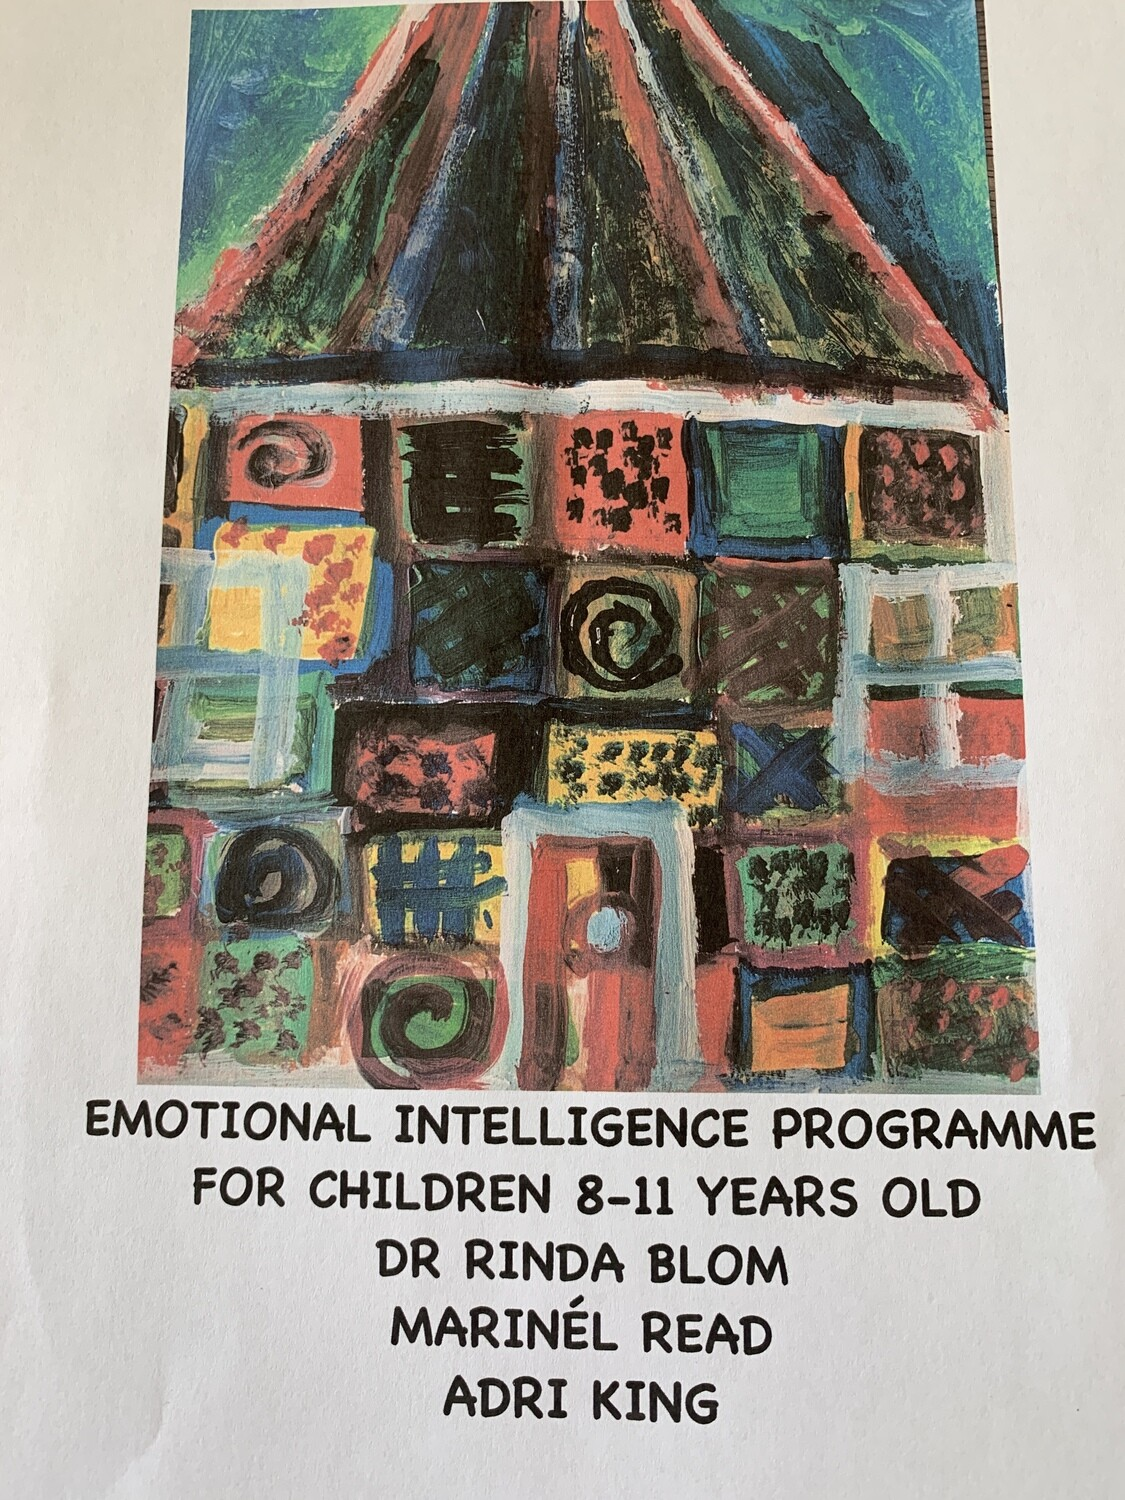 Emotional intelligence programme for children ages 8-11's emotional intelligence